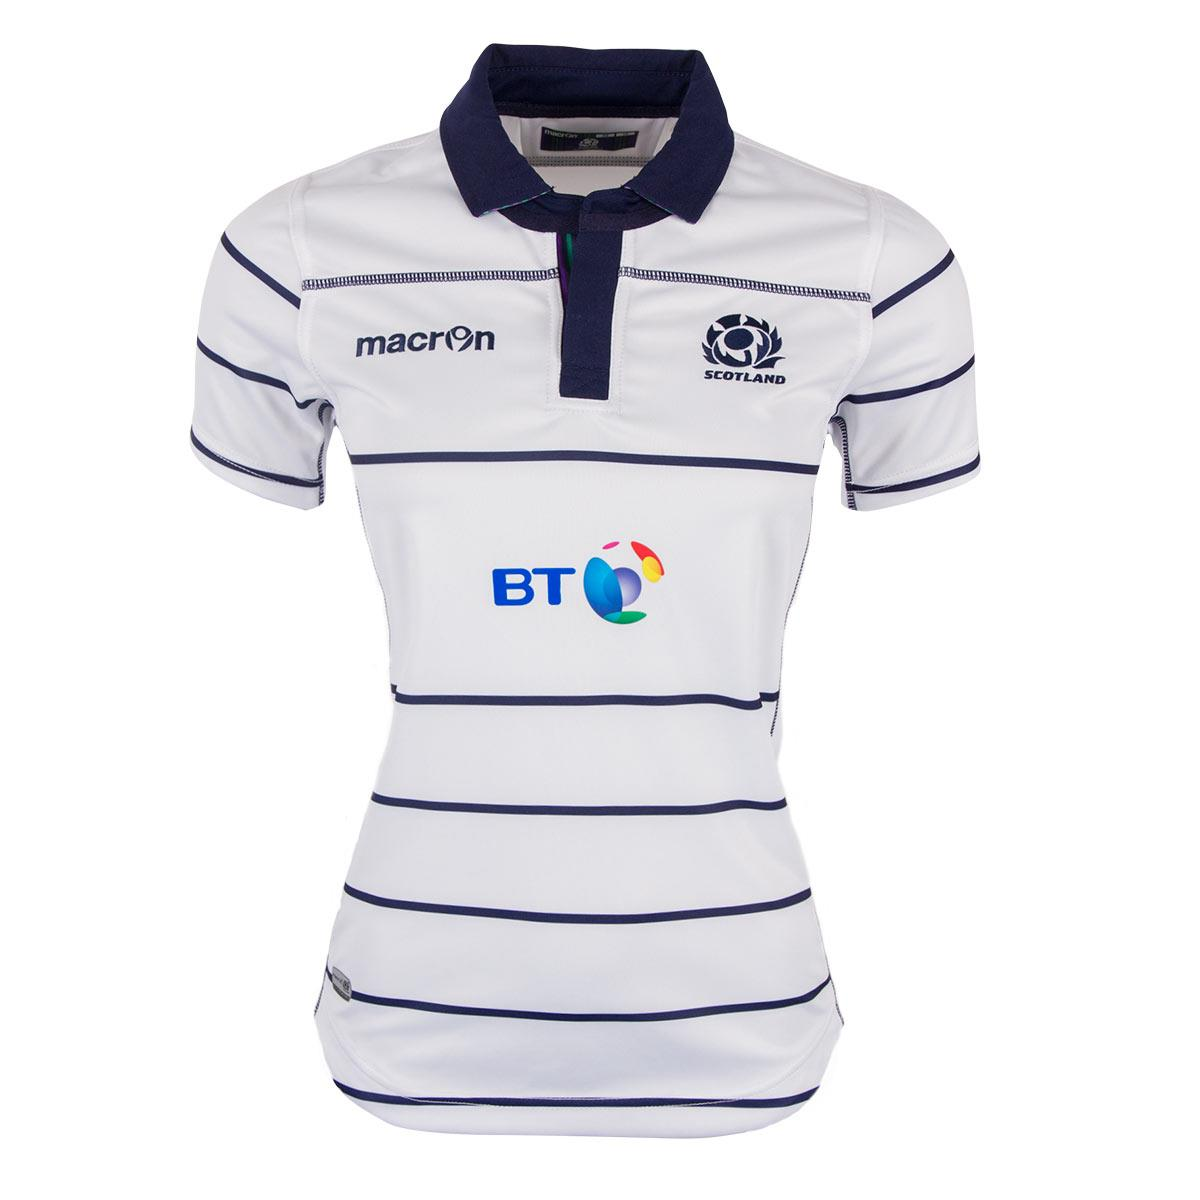 Rugby Shirts. A rugby shirt used to only be worn as a team jersey or uniform by ruby players. However, that is no longer the case. Modern rugby shirts can be seen being worn by everyone, from men and women to toddlers and infants.